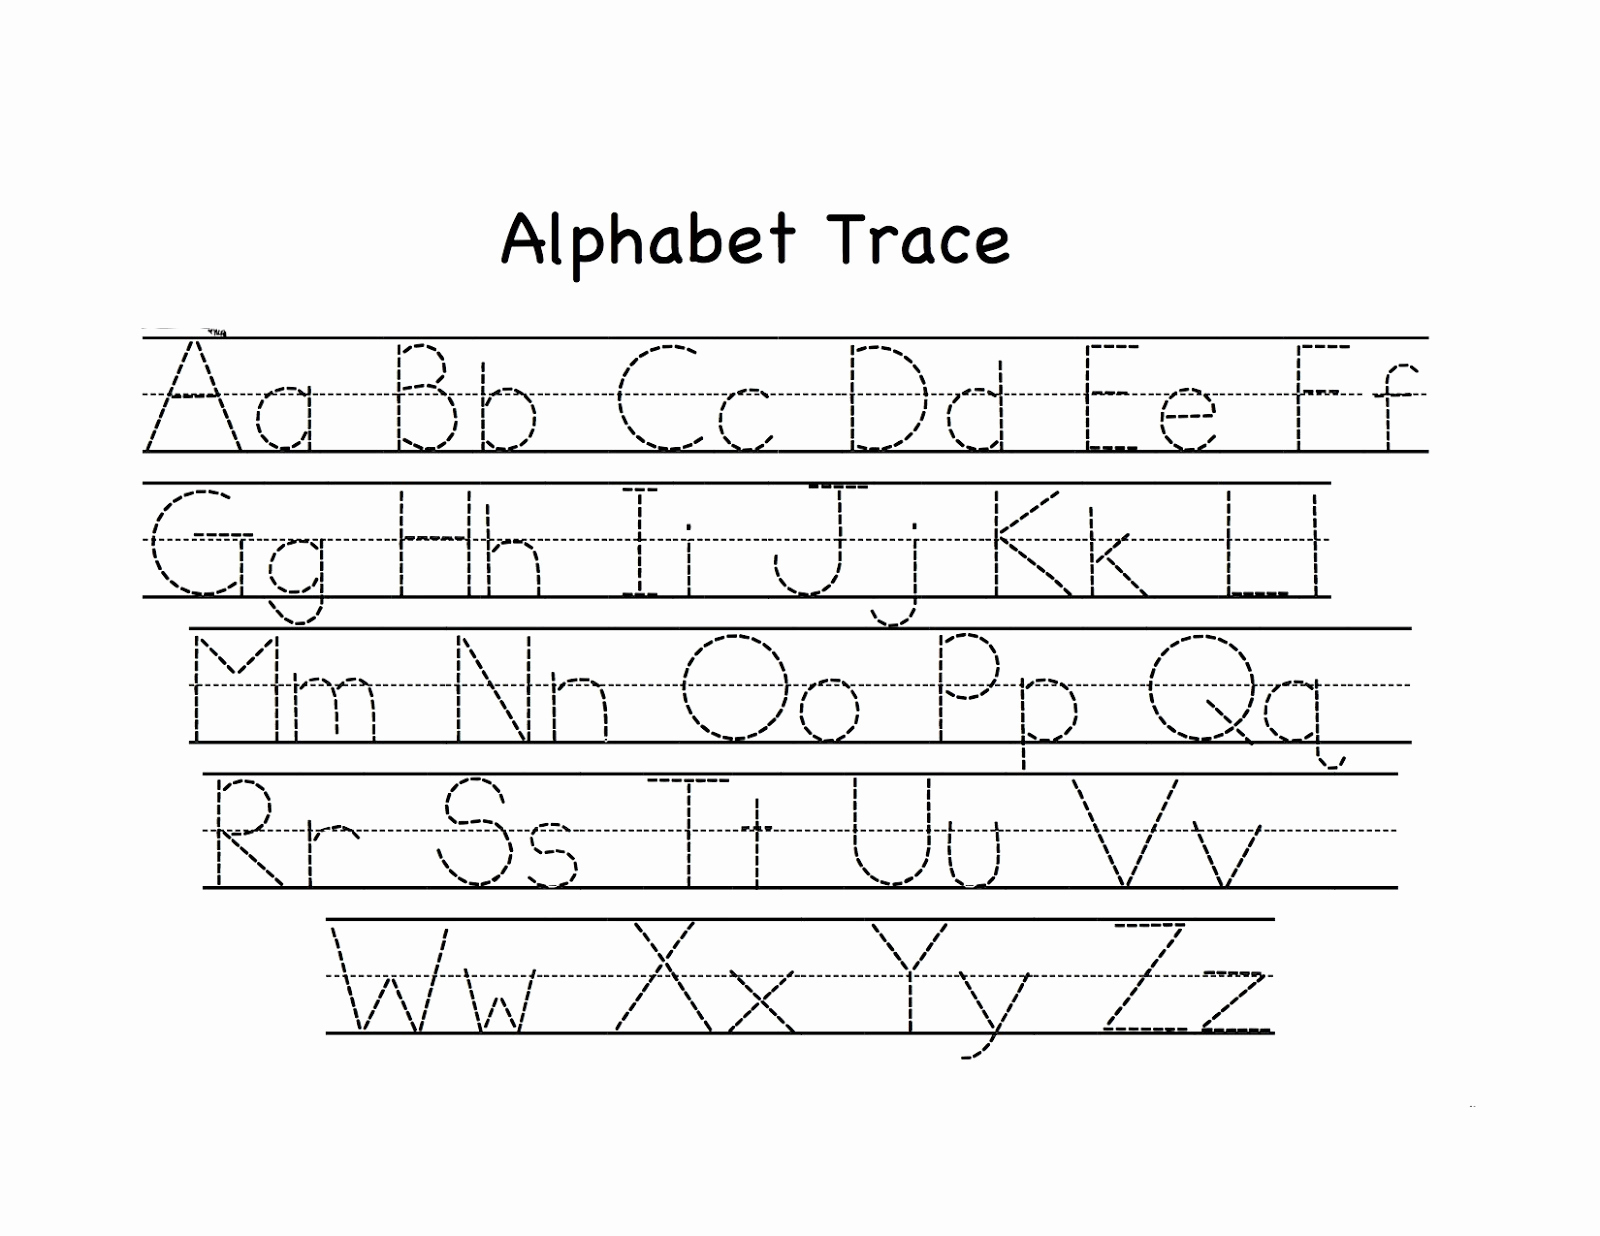 Alphabet Trace Worksheet Unique Preschool Tracing Worksheets Best Coloring Pages for Kids